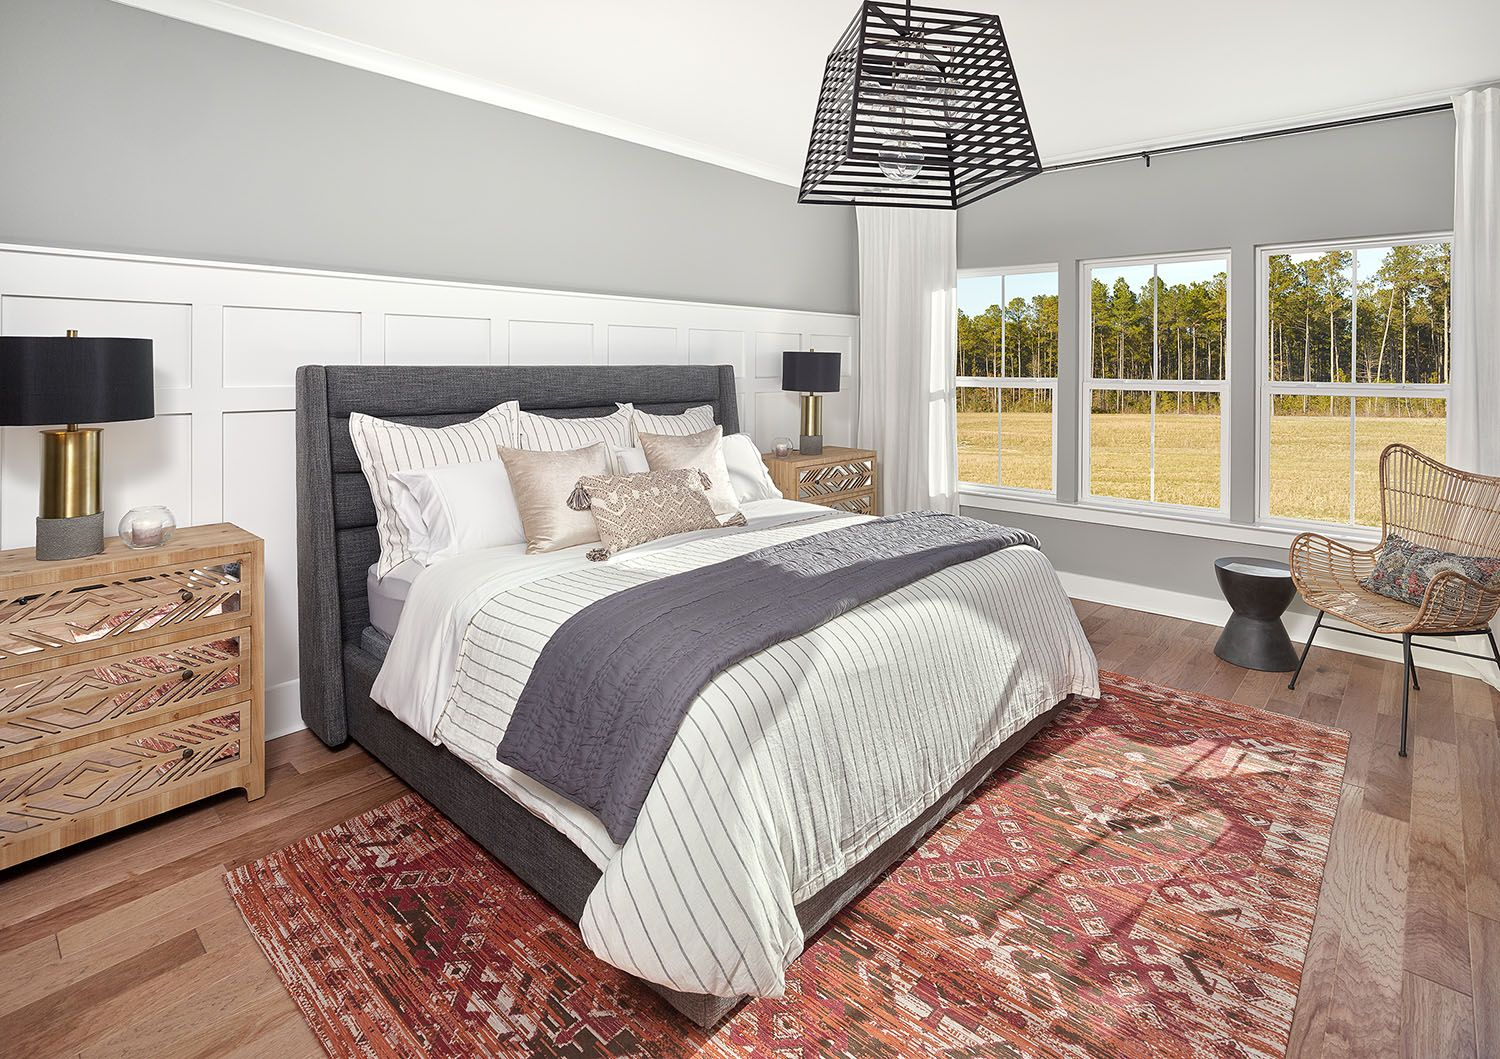 Bedroom featured in the Berkeley By Ashton Woods in Charleston, SC